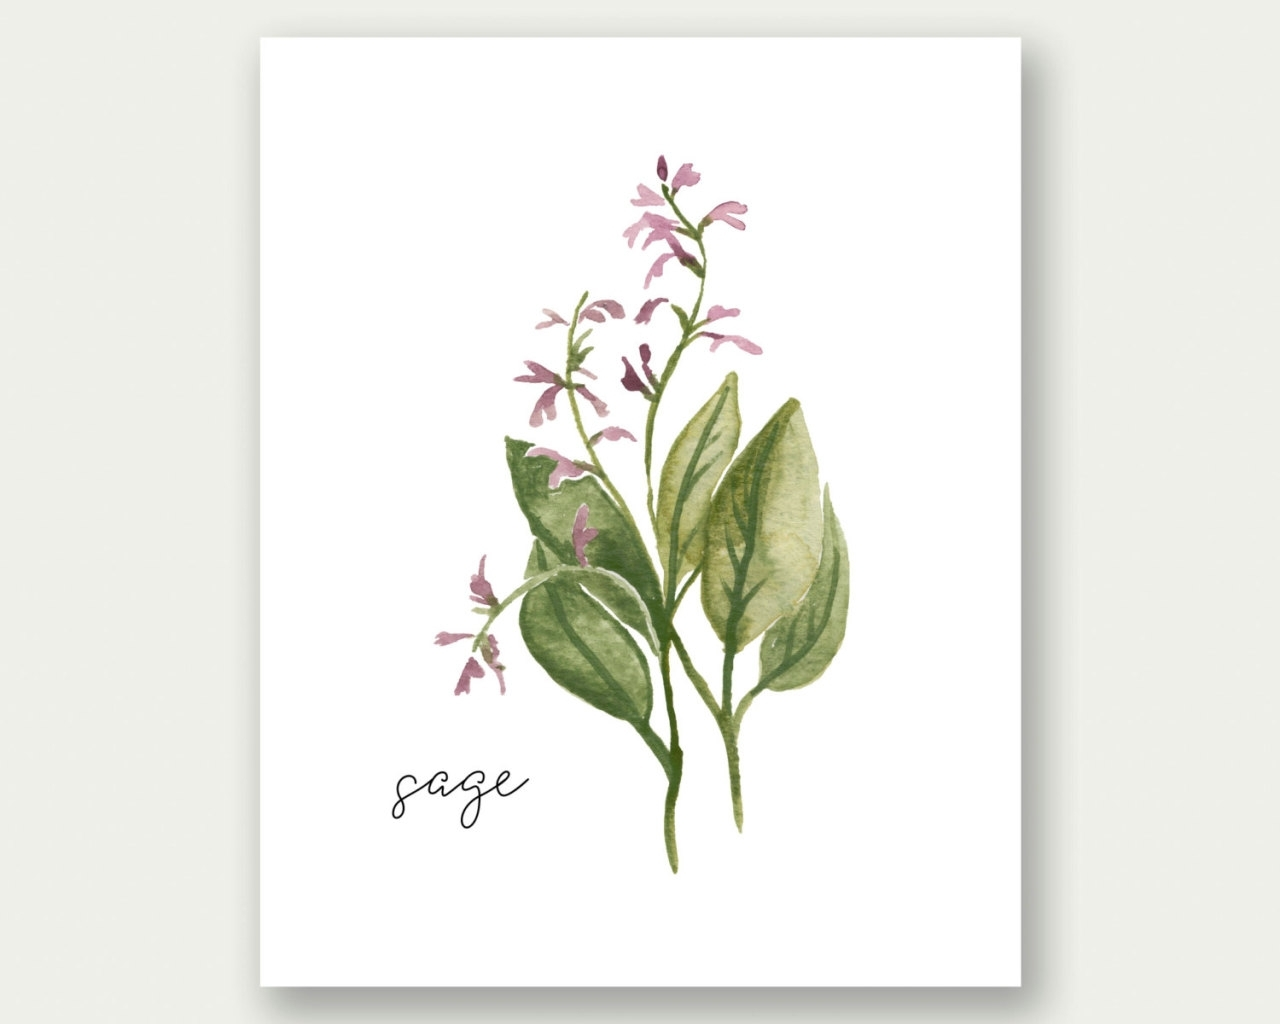 Watercolor Landcolor Skycolor — Herb Wall Art, Herb Print, Sage Wall With Regard To Latest Herb Wall Art (View 20 of 20)